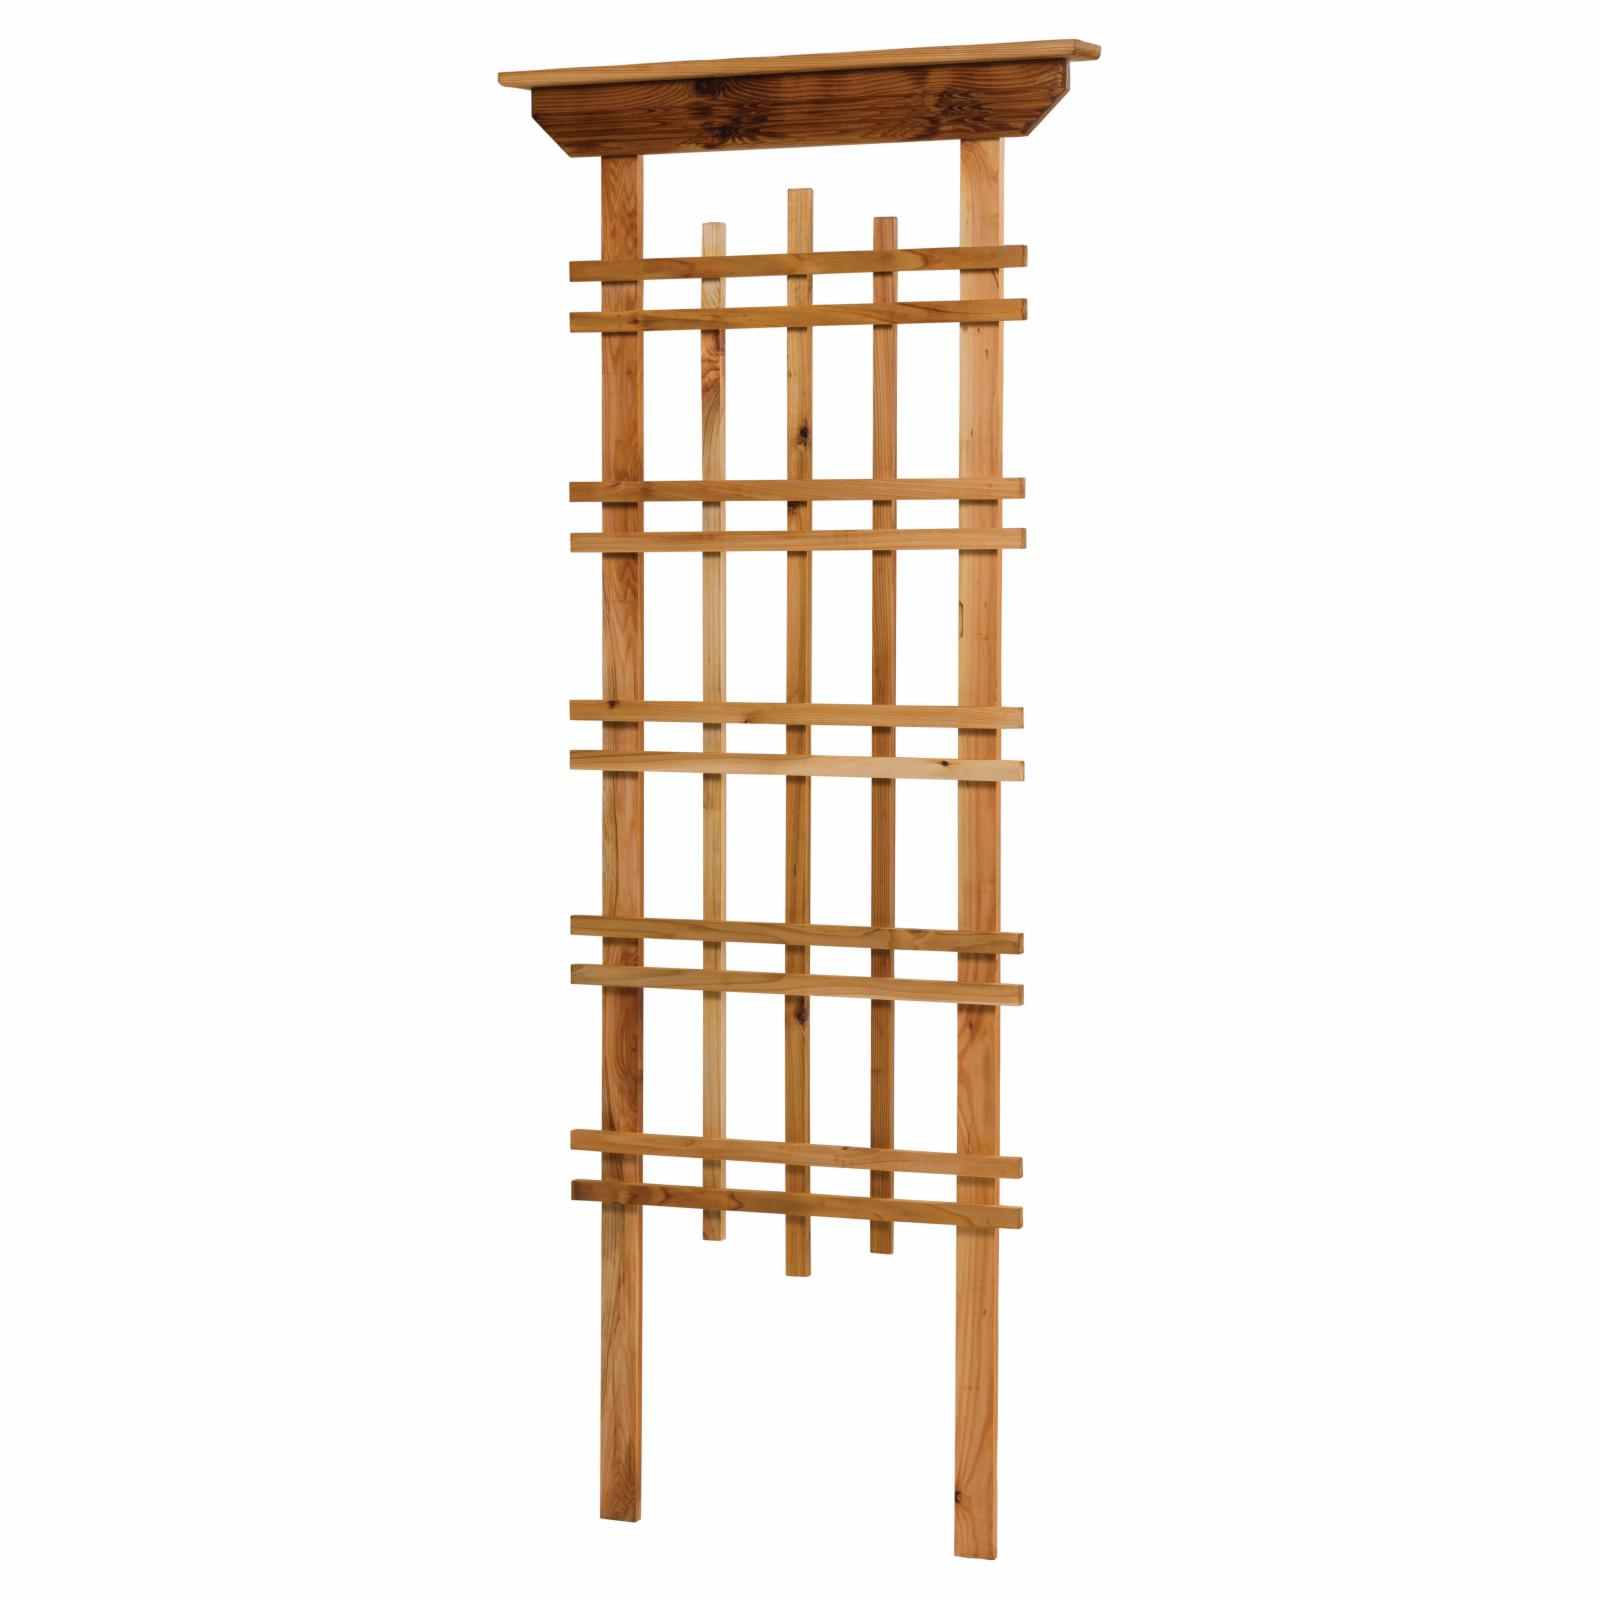 Great Lakes Outdoor Living Grande Mission Trellis - GLCP-...